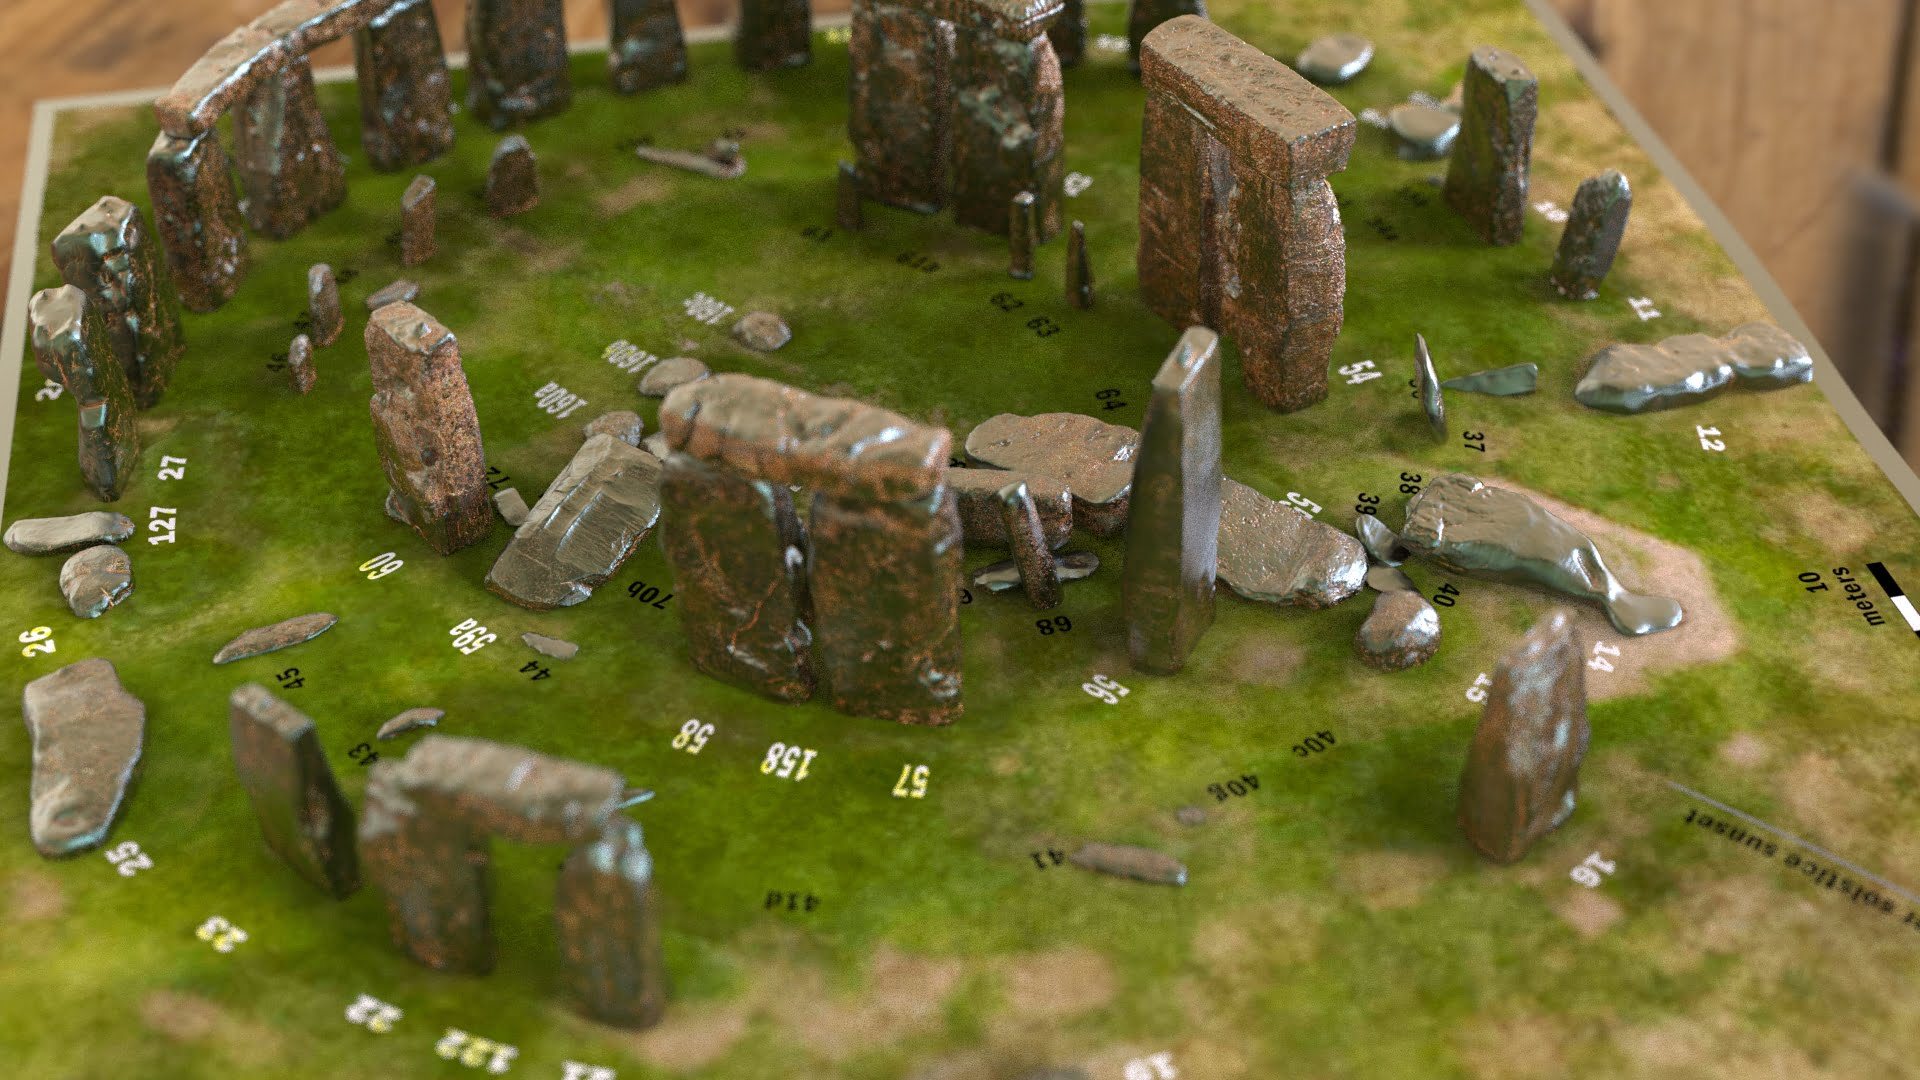 Buy Stonehenge Models: Light rust patina on cold cast Stonehenge model replica 195 x 195 mm or 7.7 x 7.7 inches square base with grass decal with or without numbered stones on ground map 003  - 200th scale pick n mix -